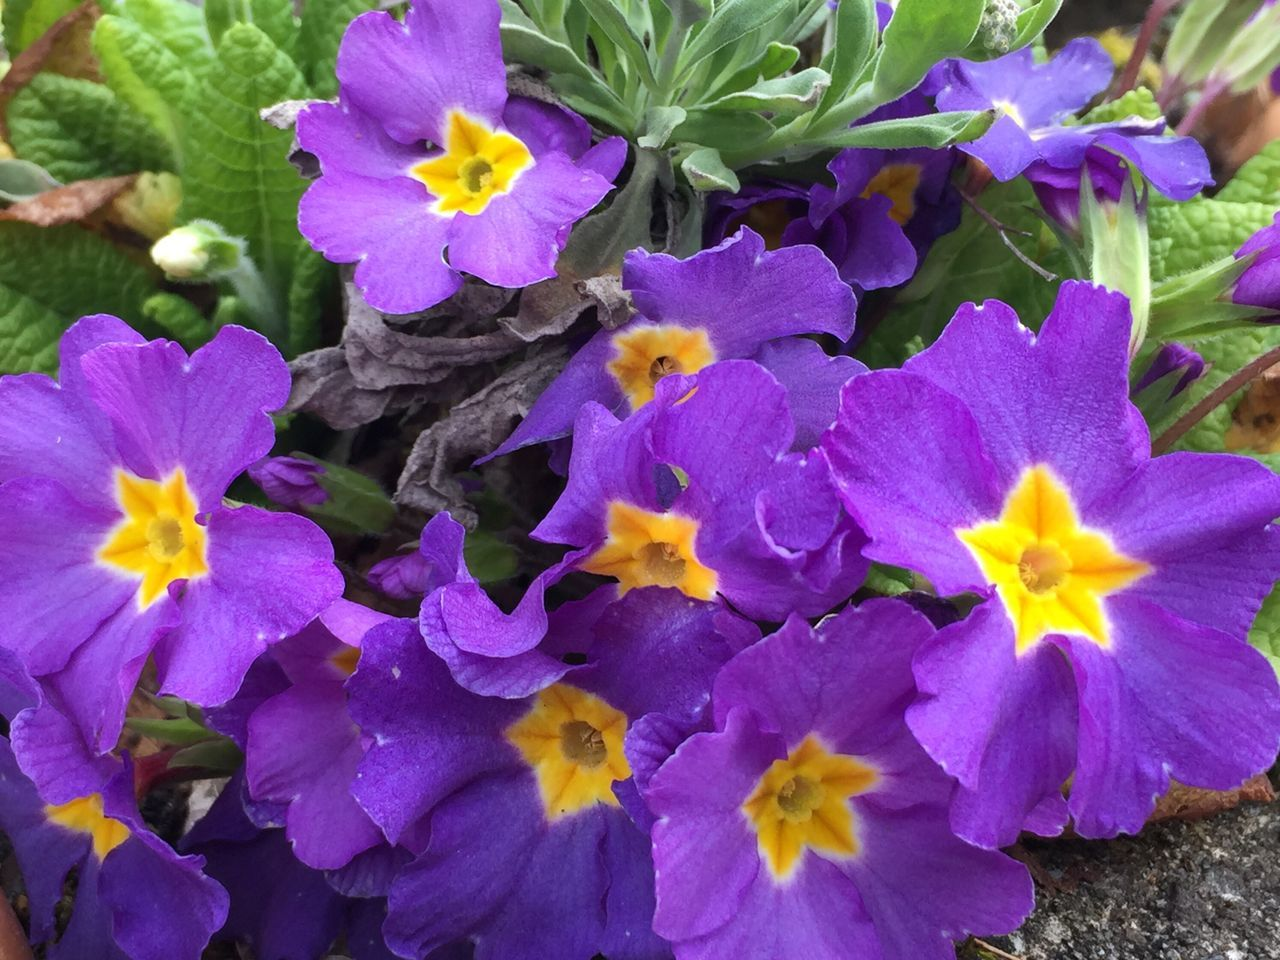 Flower Freshness Fragility Petal Purple Beauty In Nature Nature Flower Head Blooming Growth No People Day Outdoors Plant Close-up Plant Growth Freshness Beauty In Nature Primrose Blossom